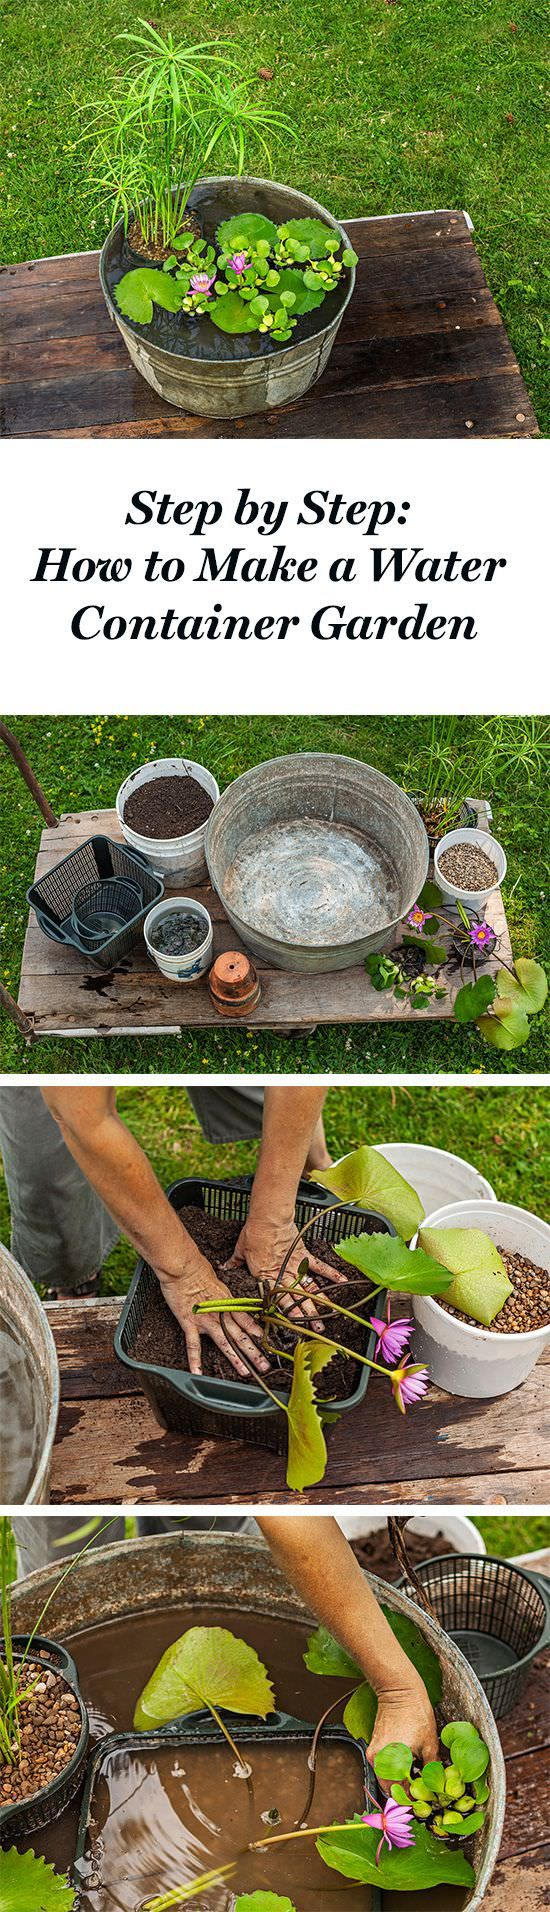 The 25 best water garden plants ideas on pinterest for How to build a koi pond step by step